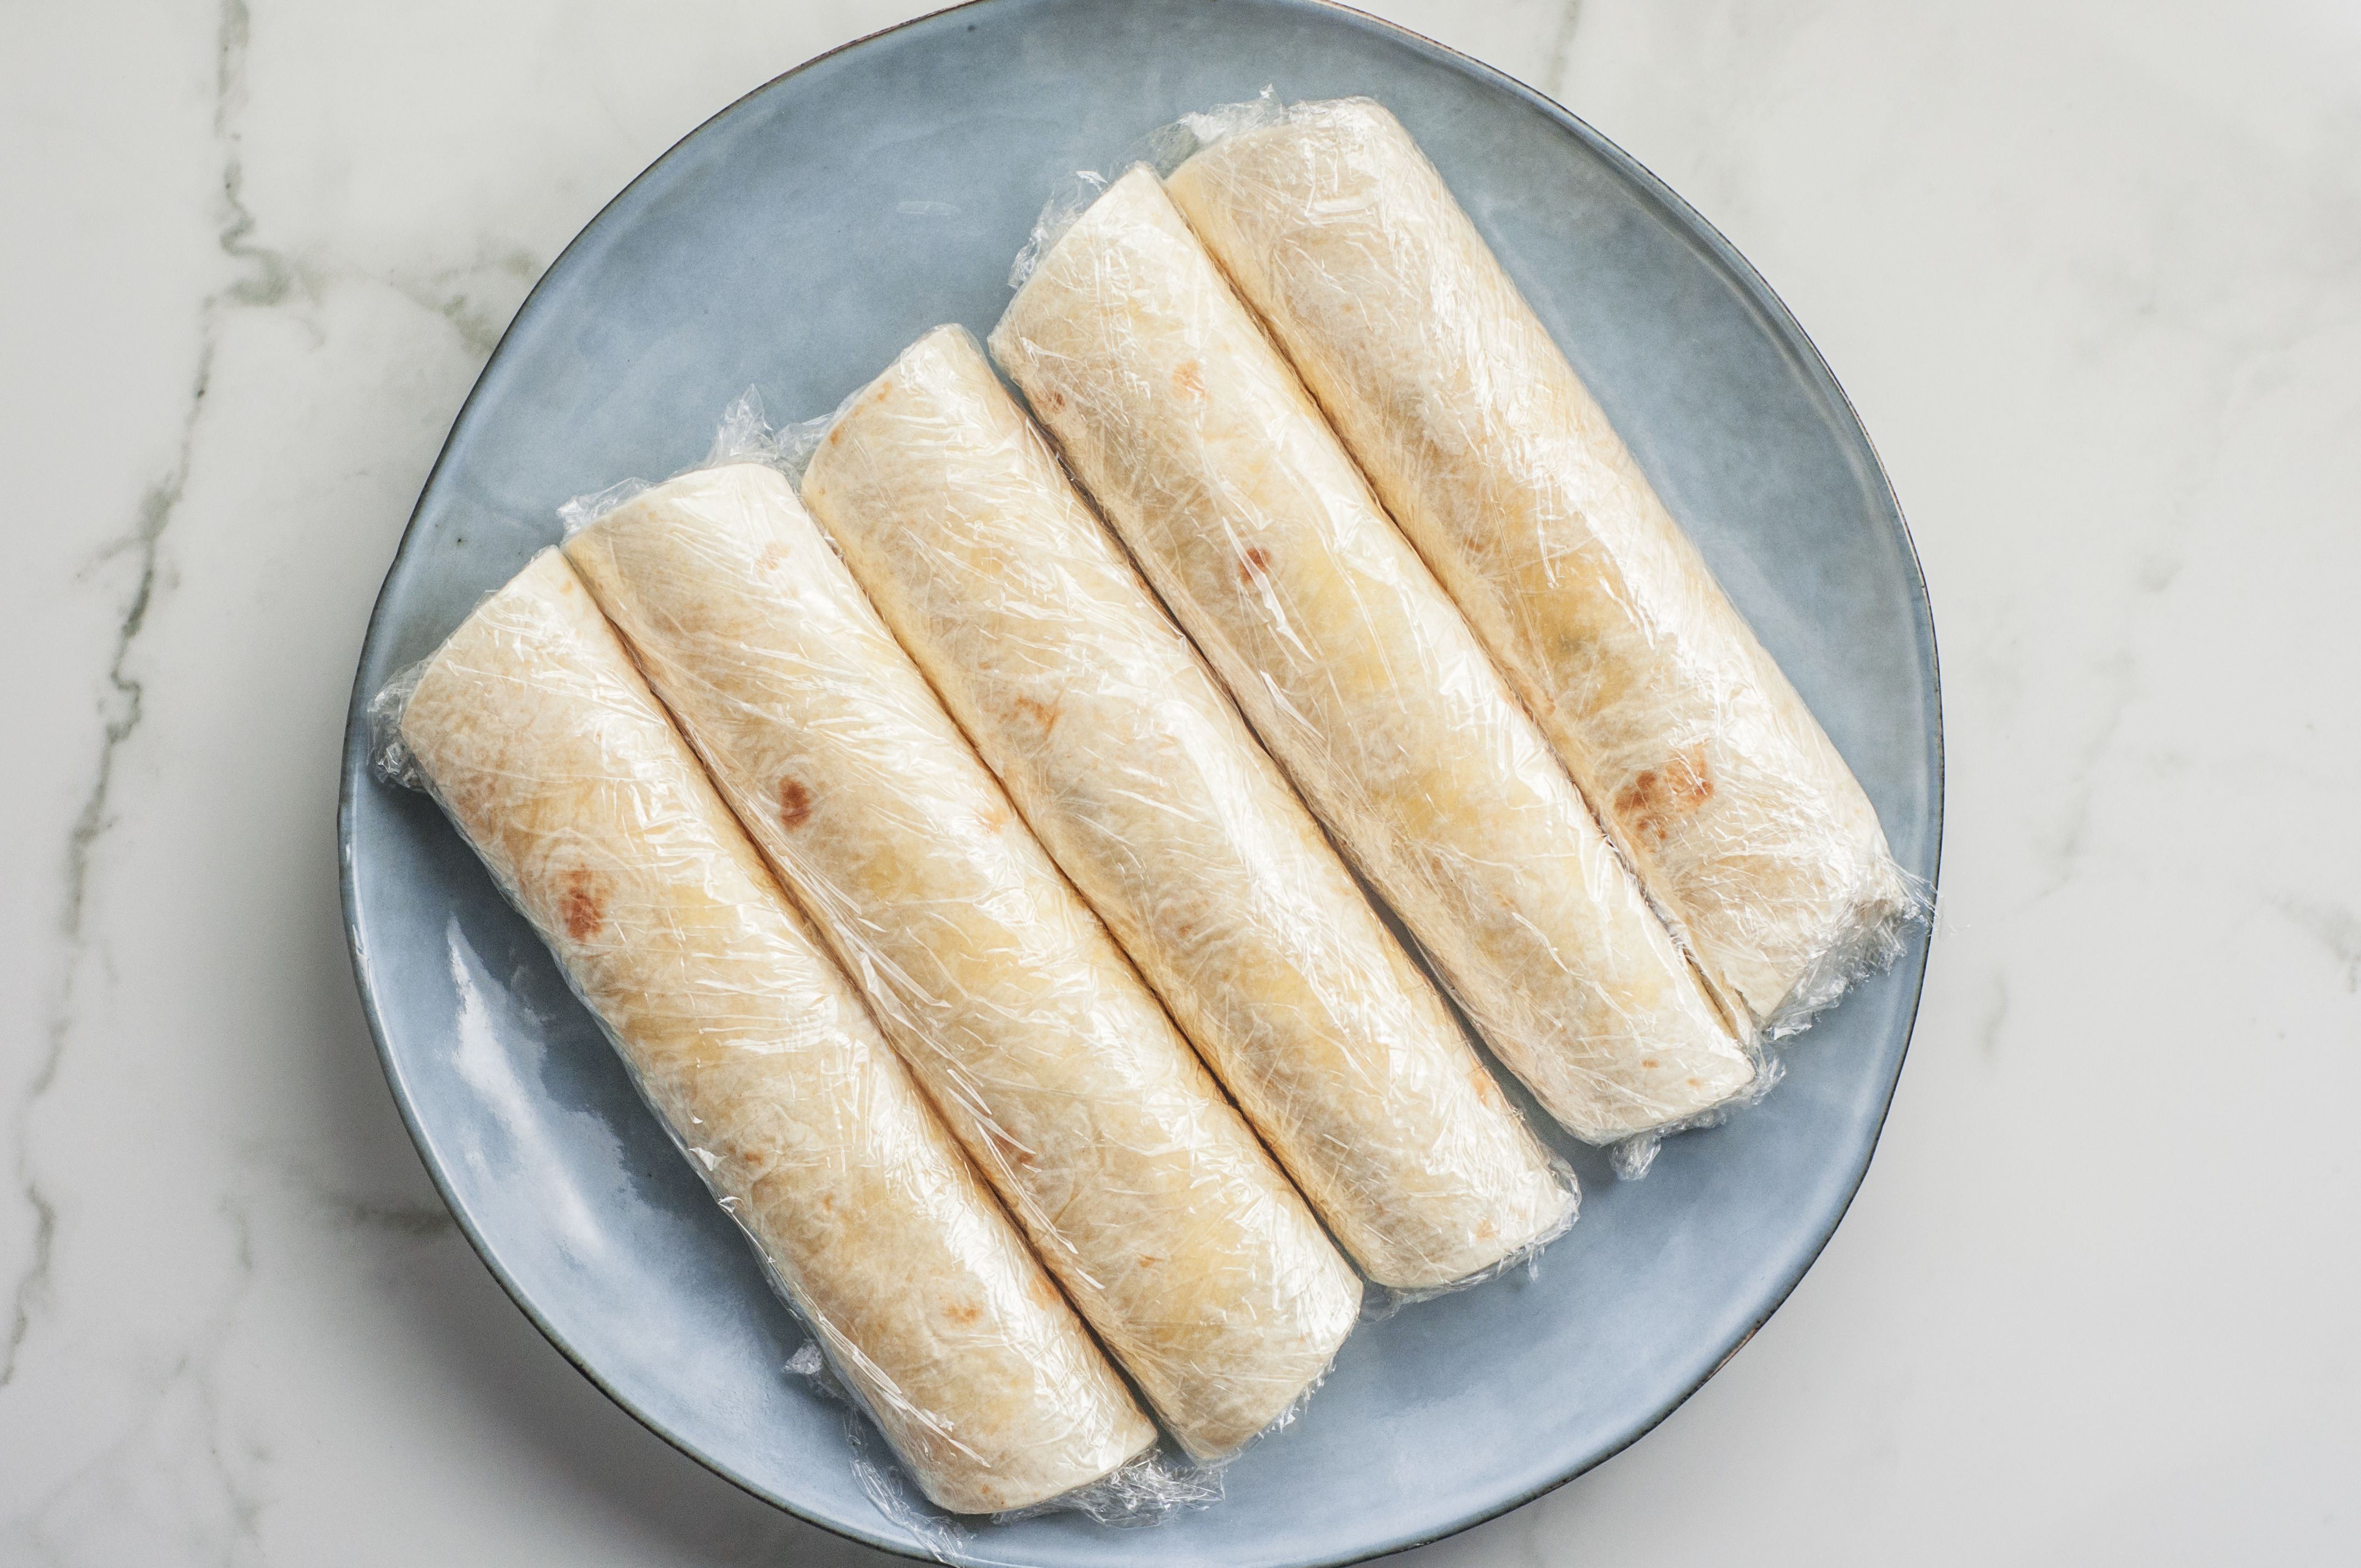 Tortillas rolled and wrapped in plastic